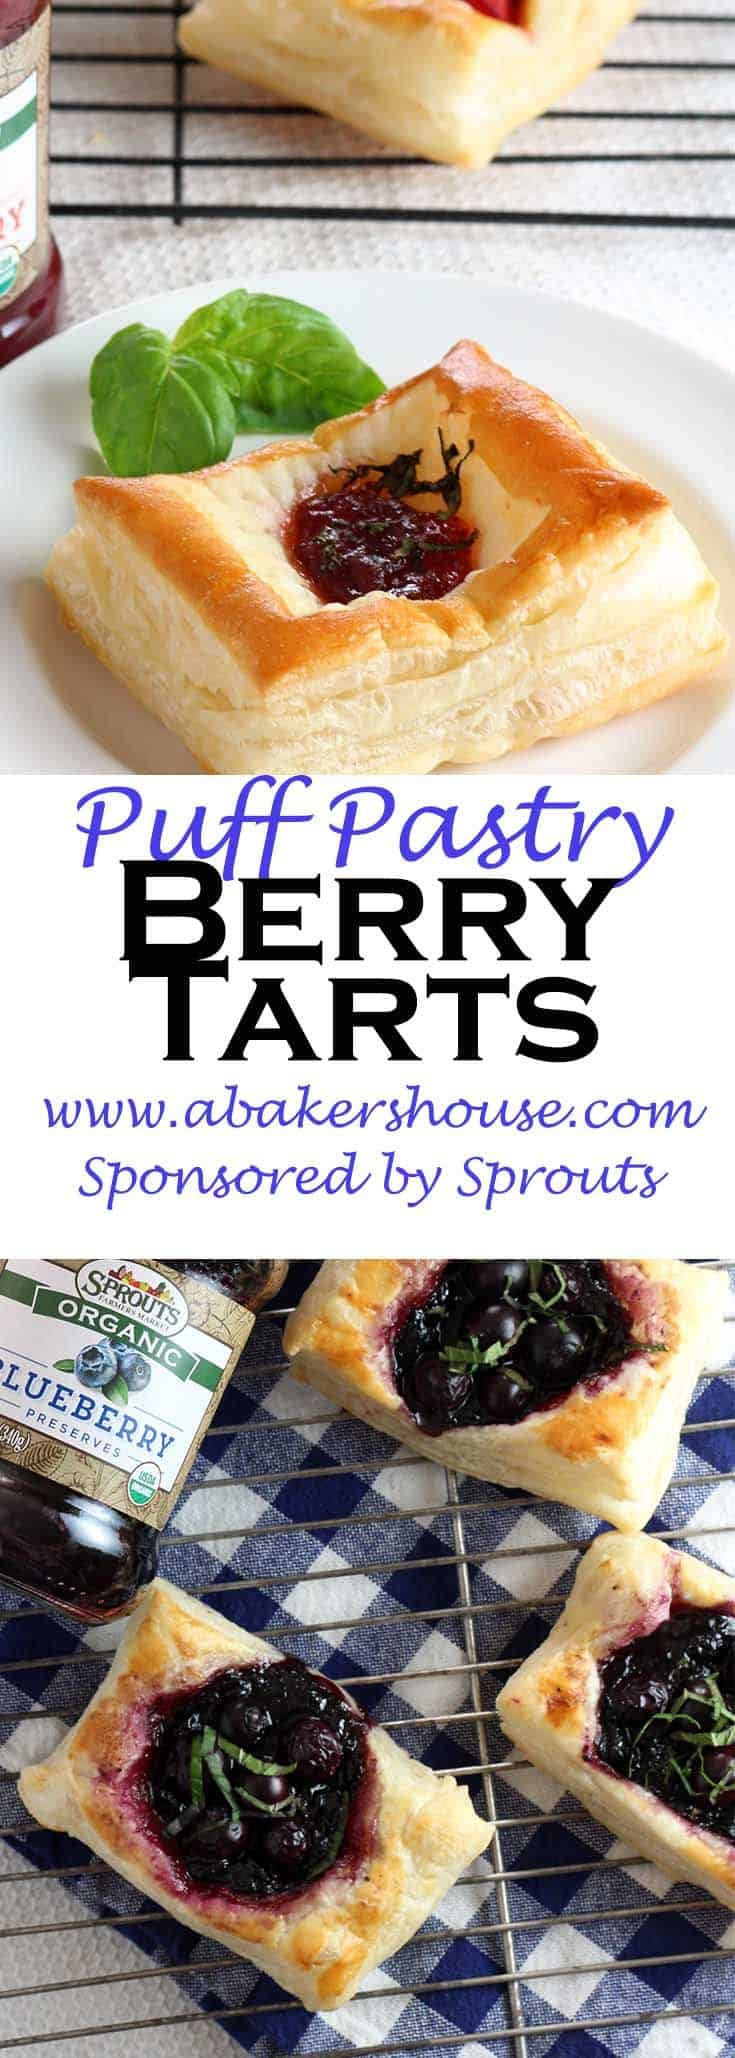 A puff pastry base serves as the canvas for theseBerry Tarts which highlight Sprouts Organic Preserves and fresh berries from their produce department. The preservesoffer a variety of options: strawberry, blueberry and apricot. #sponsored #abakershouse #sprouts #puffpastry #easy #breakfast